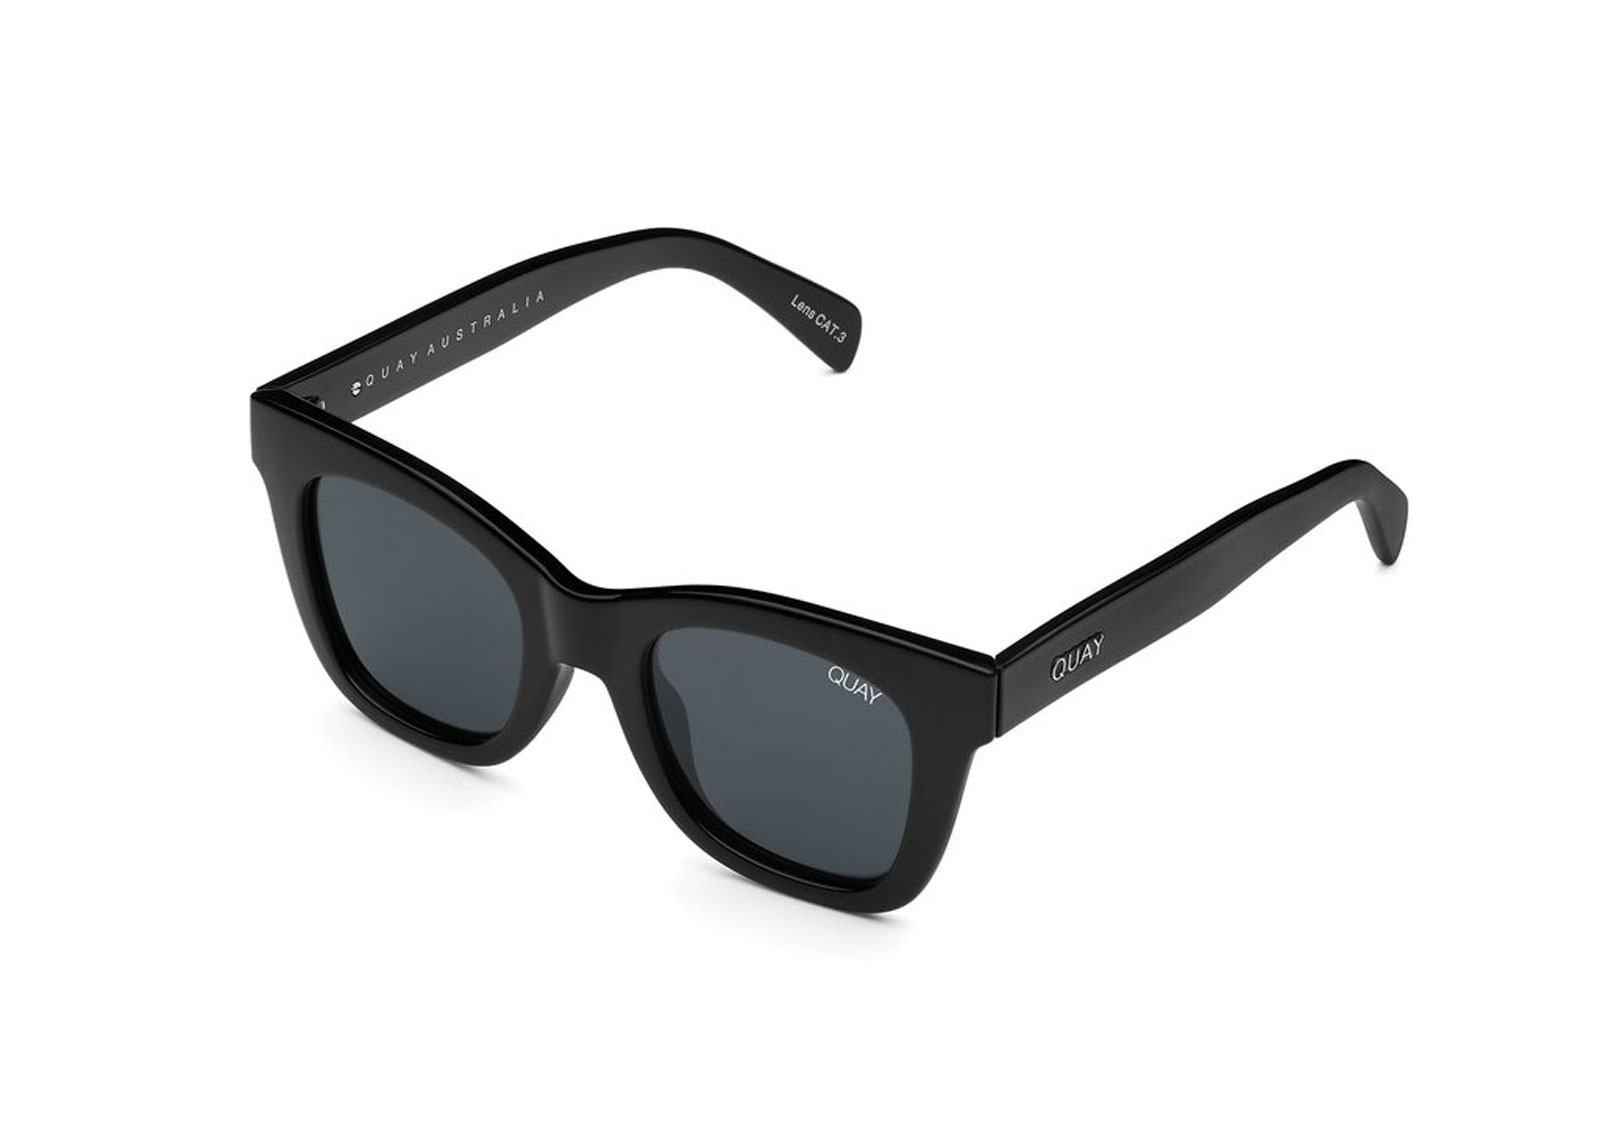 Black chunky sunglasses